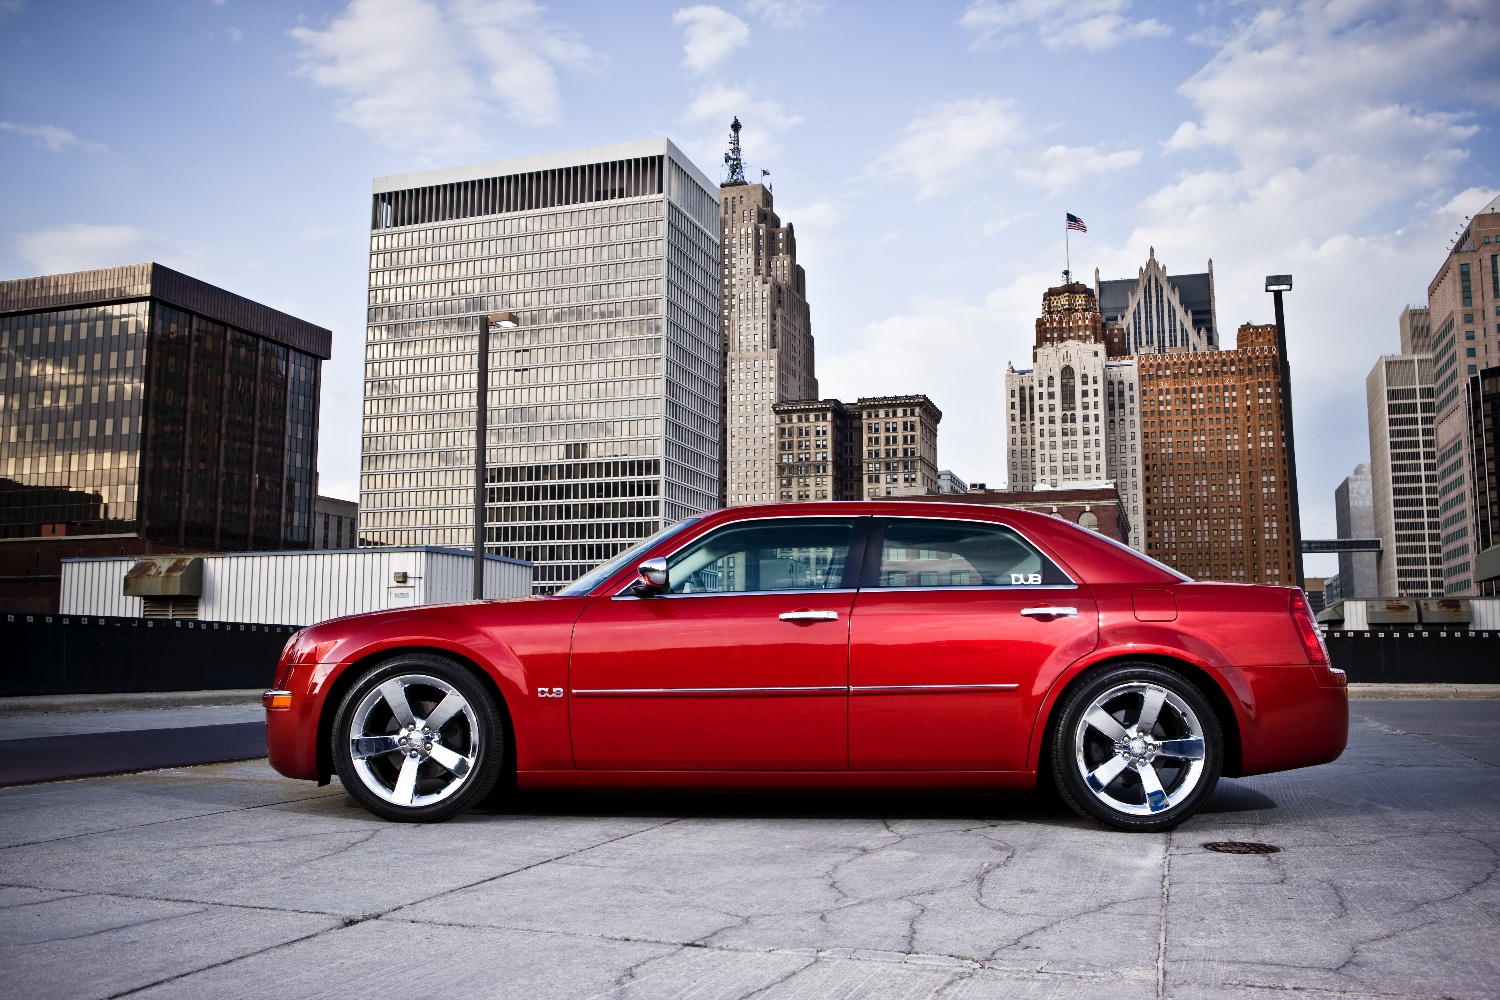 Chrysler 300 DUB EDITION